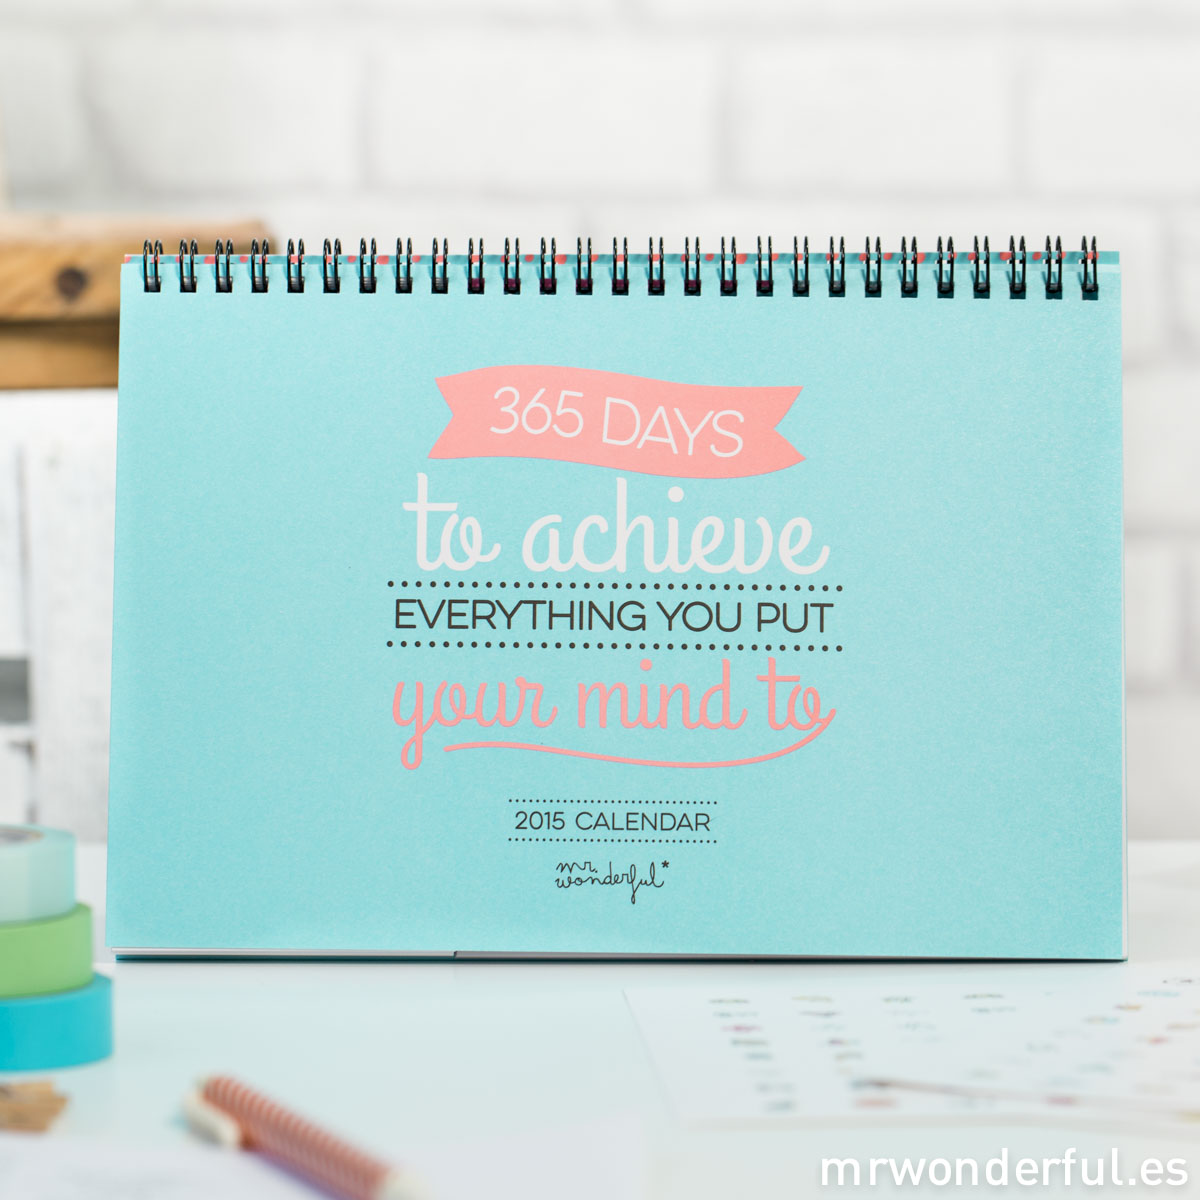 mrwonderful_CAL-WONDER-10_Calendario-2015_365--days-achieve-everything-your-mind-2